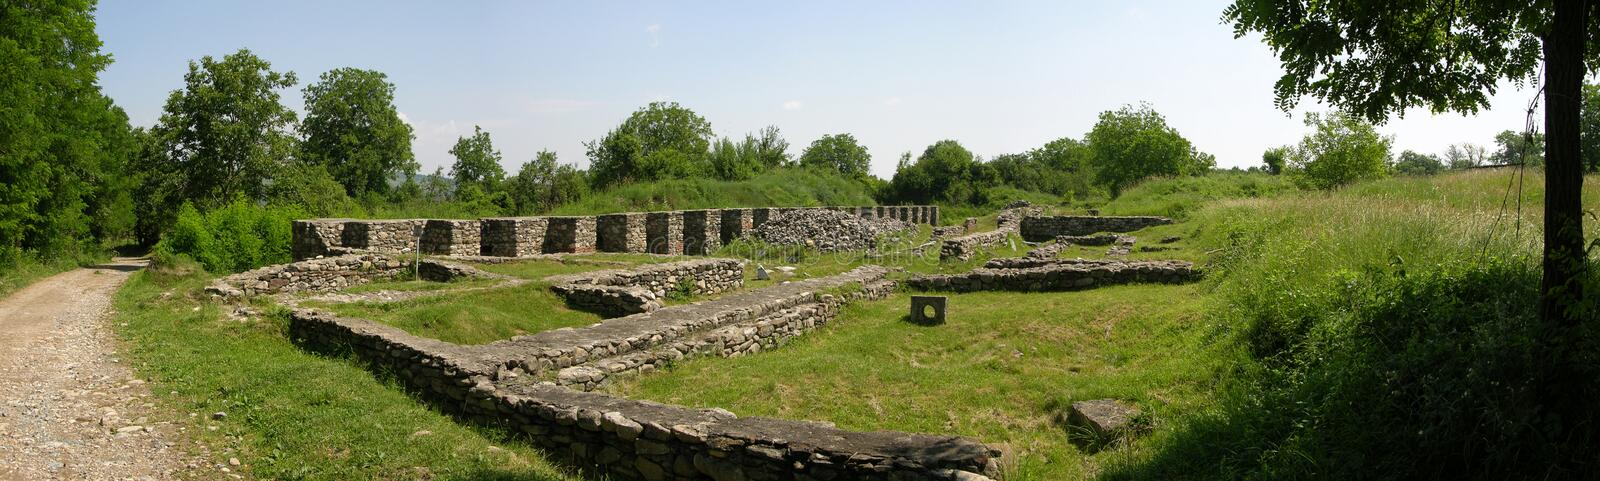 Romans ruins in Romania royalty free stock image